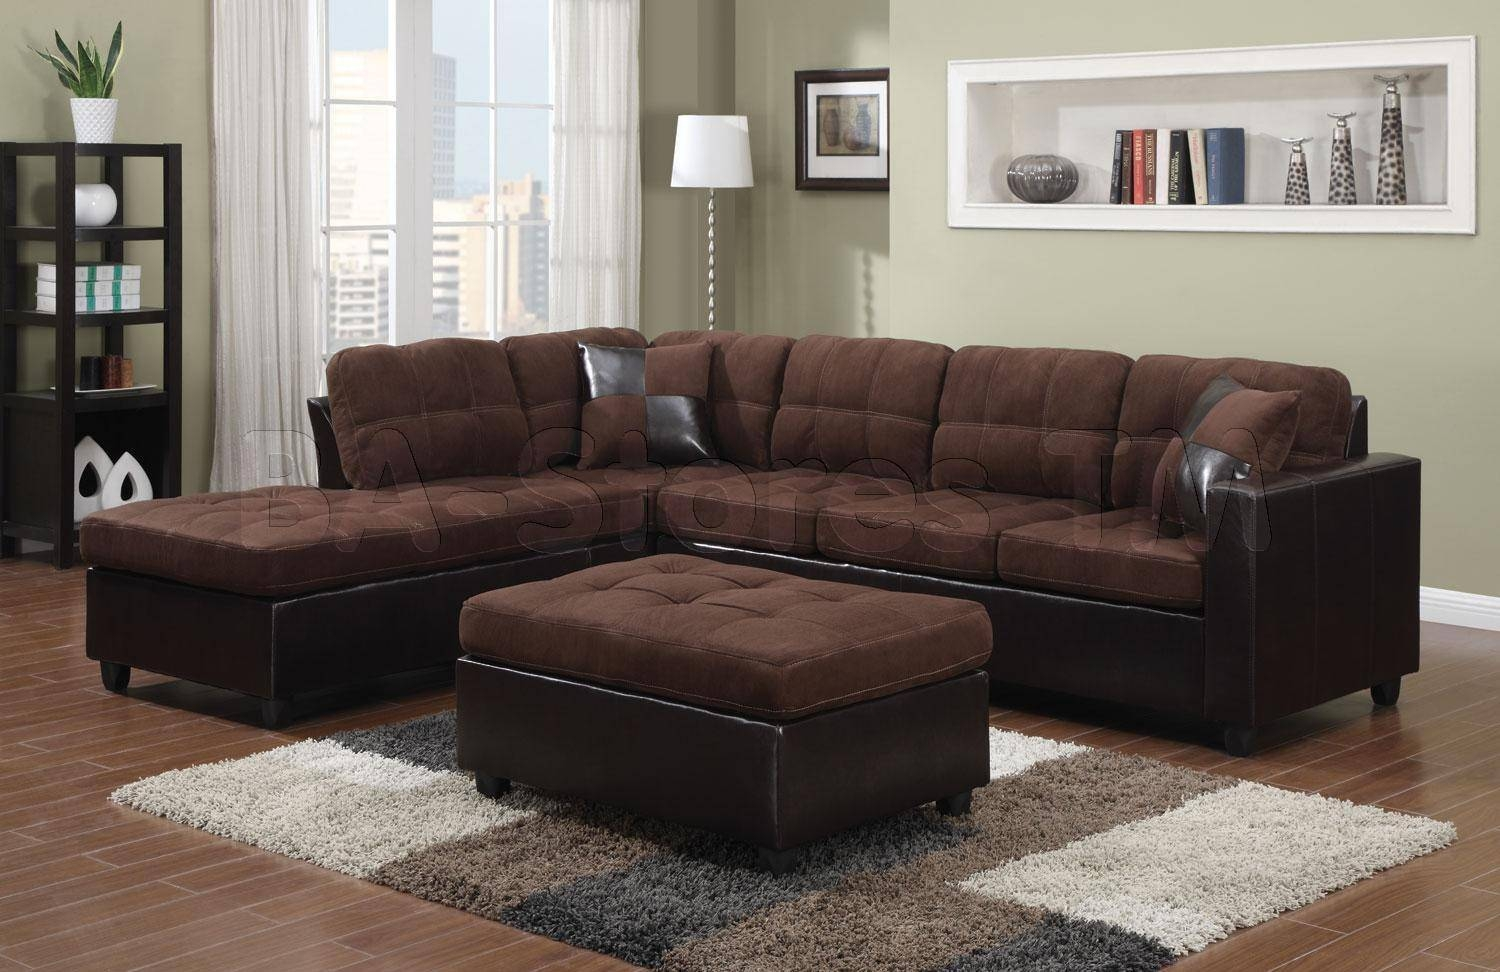 Microfiber Sectional Sofa. Black Leather With Cream Cuhsion throughout Chocolate Brown Microfiber Sectional Sofas (Image 11 of 15)